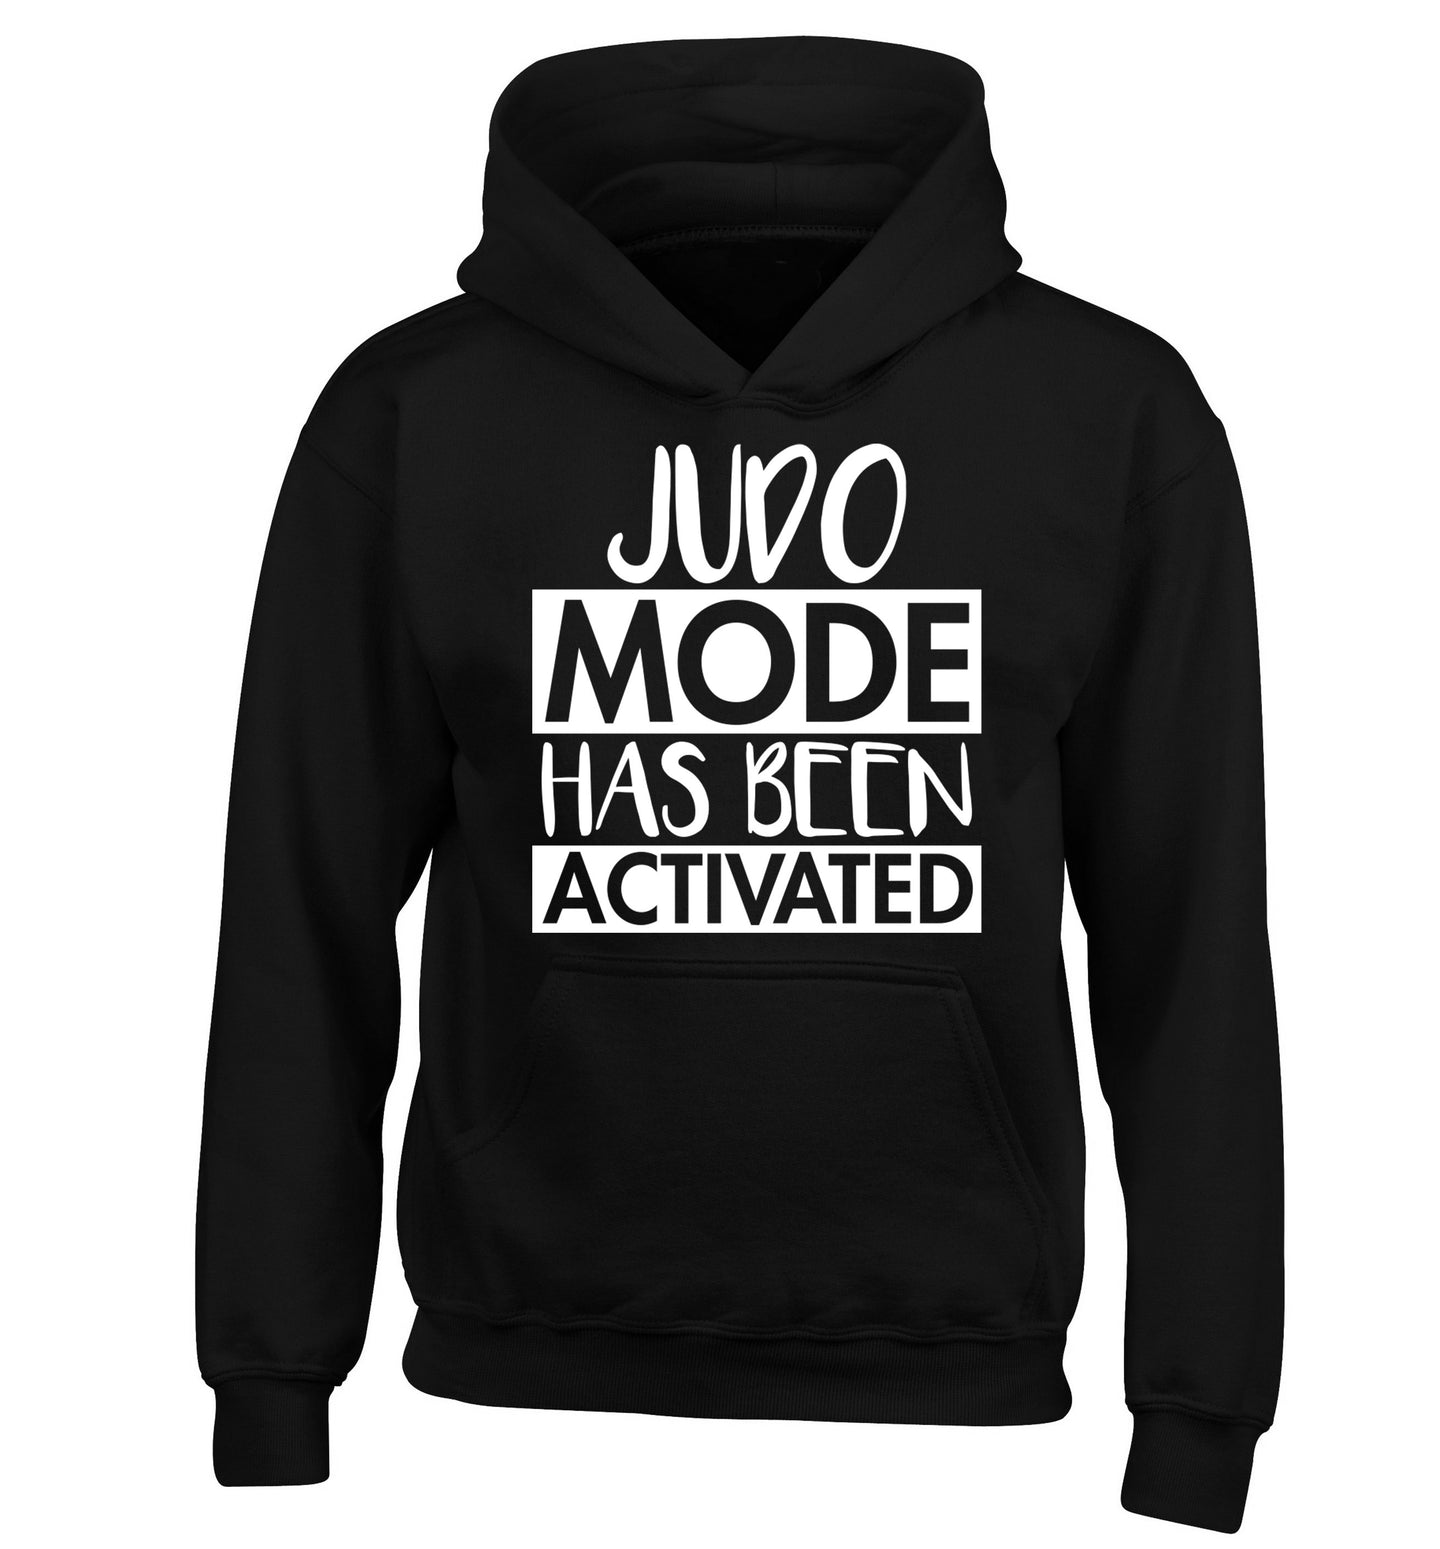 Judo mode activated children's black hoodie 12-14 Years